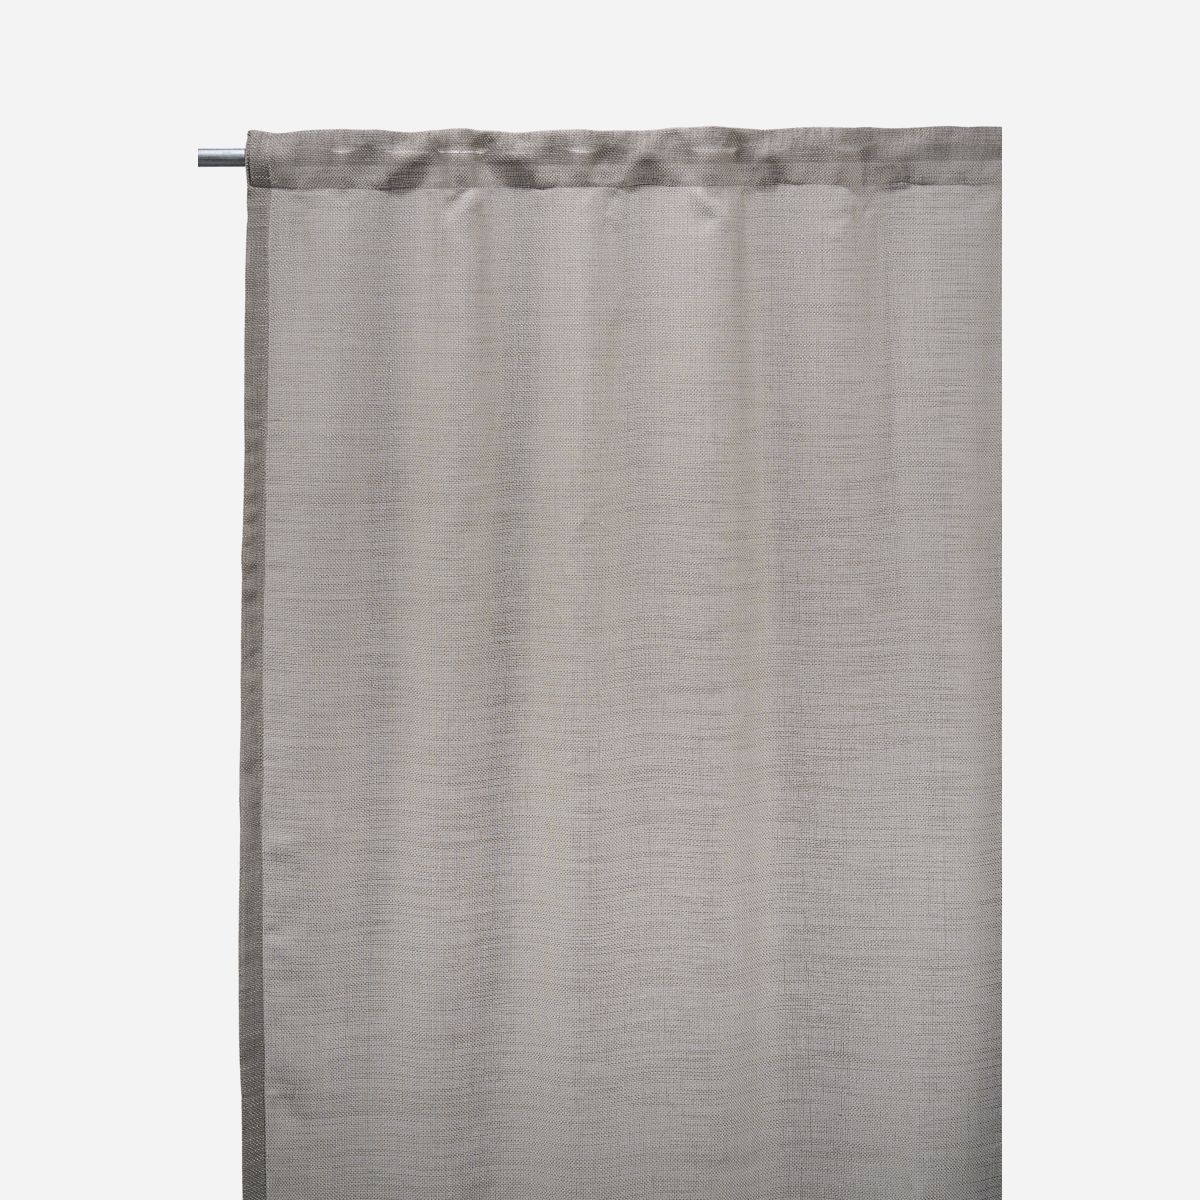 Image of   Curtains, Plain, Grey/Brown, Set of 2 pcs